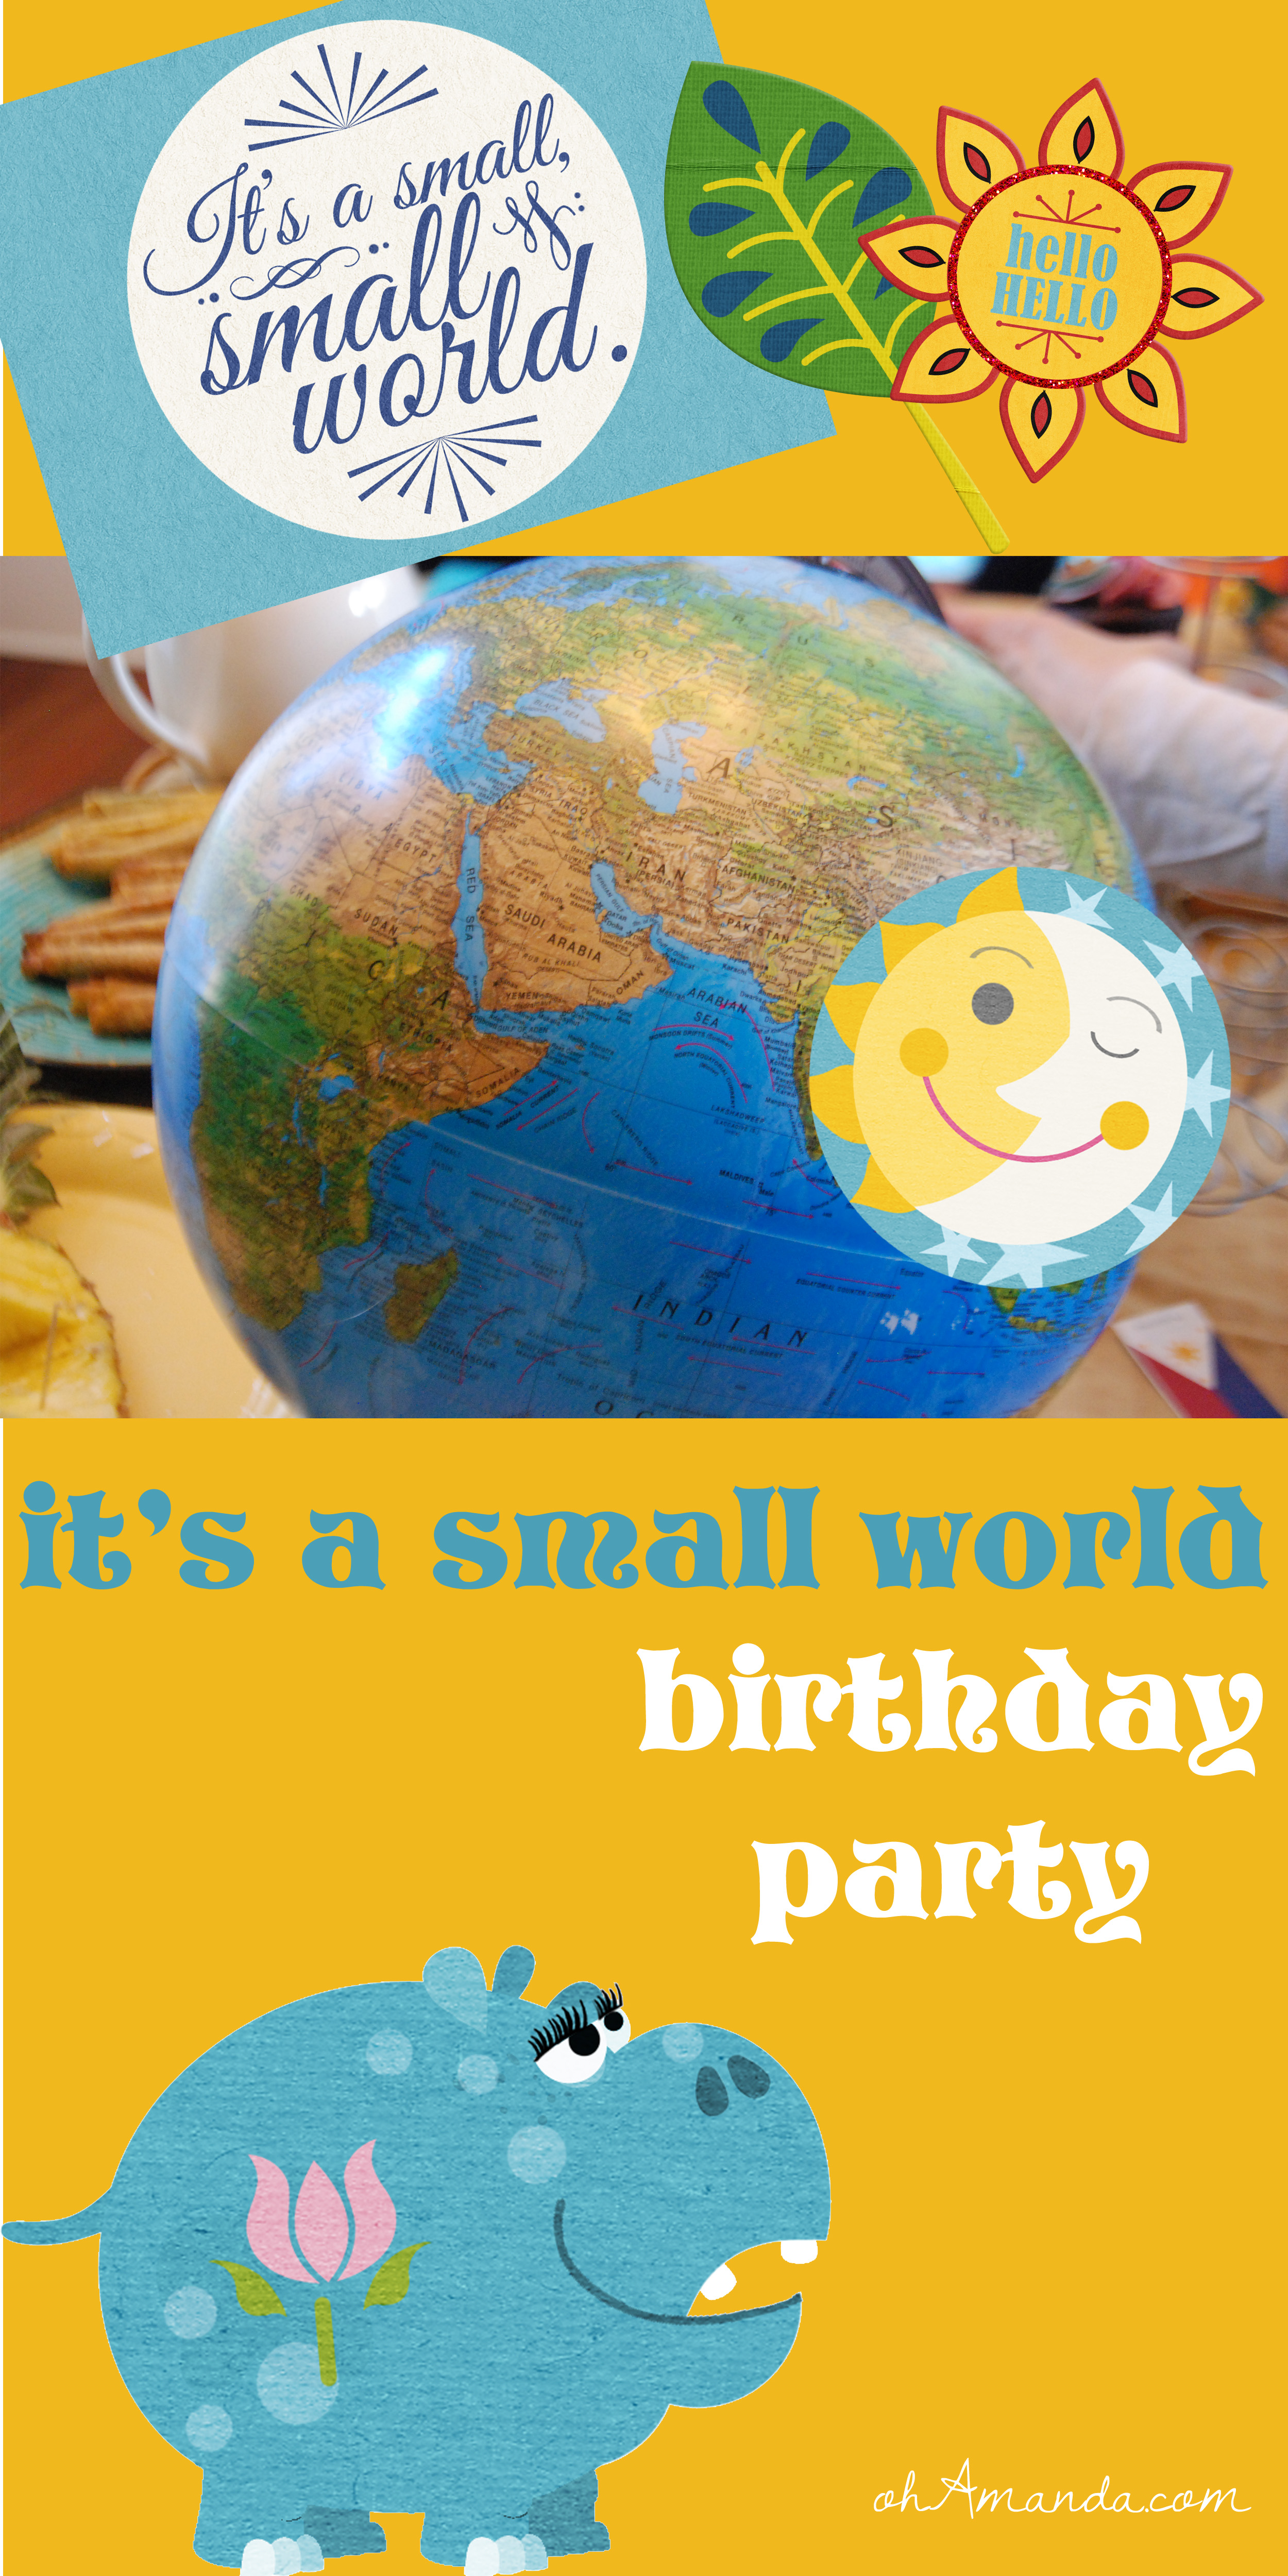 It's a Small World Birthday Party // ohAmanda.com